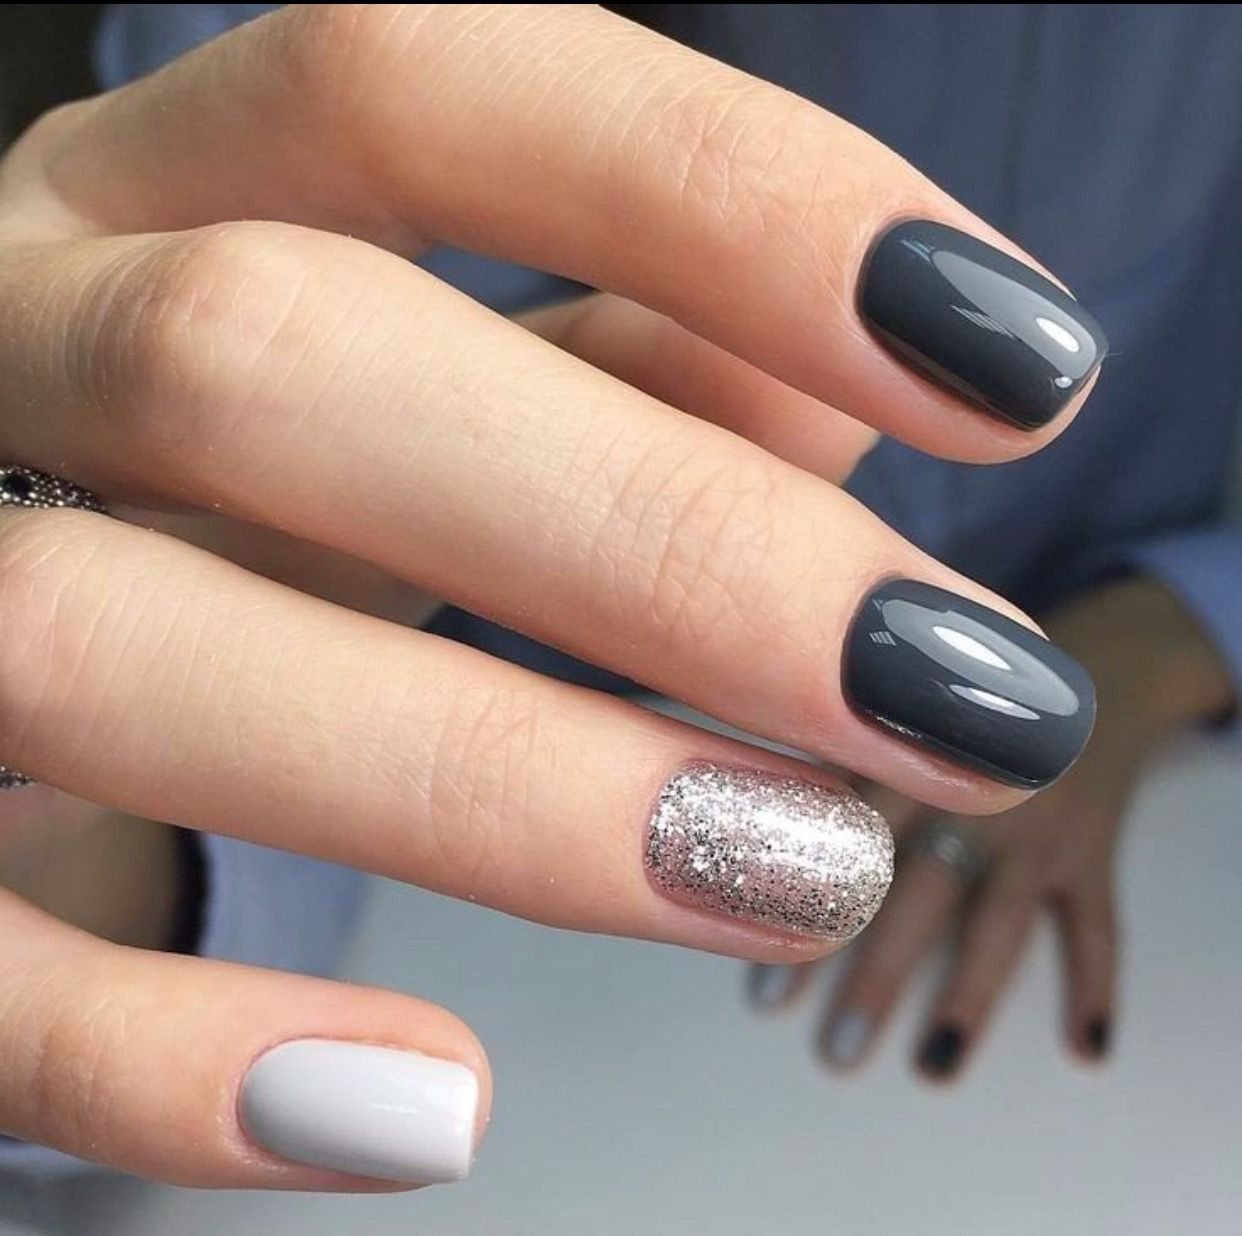 Not the glitter but charcoal and light grey!! | Ногти | Pinterest ...